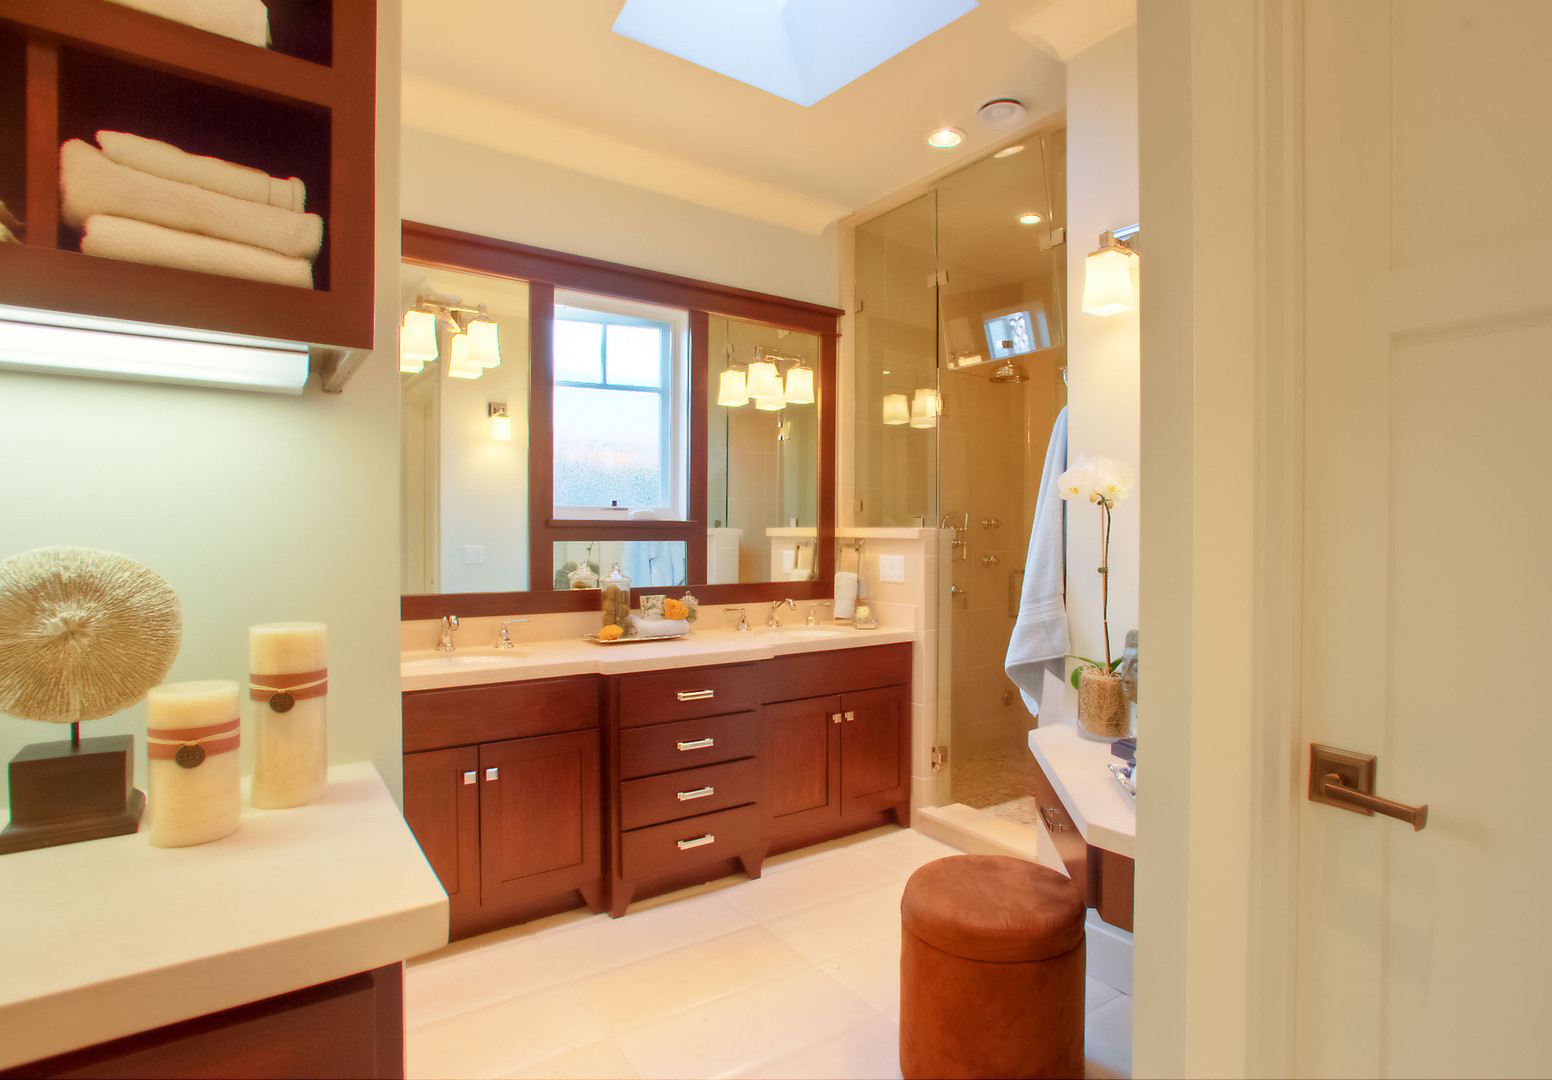 Traditional - South - Master Bath - 1 -